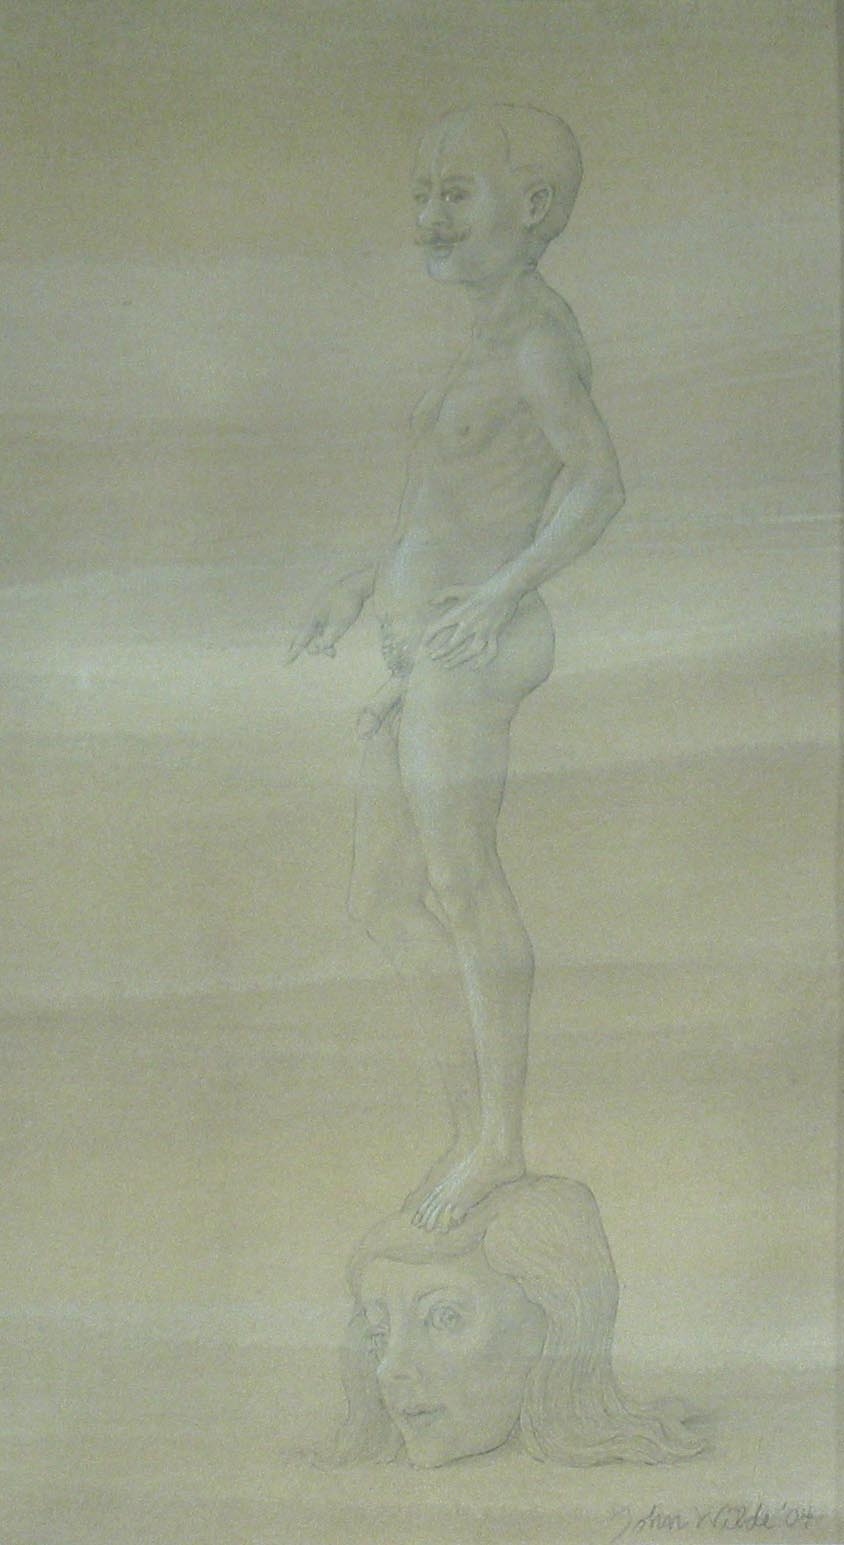 STUDY FOR E AT D'S #10 MALE NUDE STANDING ON A LARGE HEAD OF A WOMAN, 2004, Pencil on Toned Paper Heightened with White Chalk, 12 x 7""